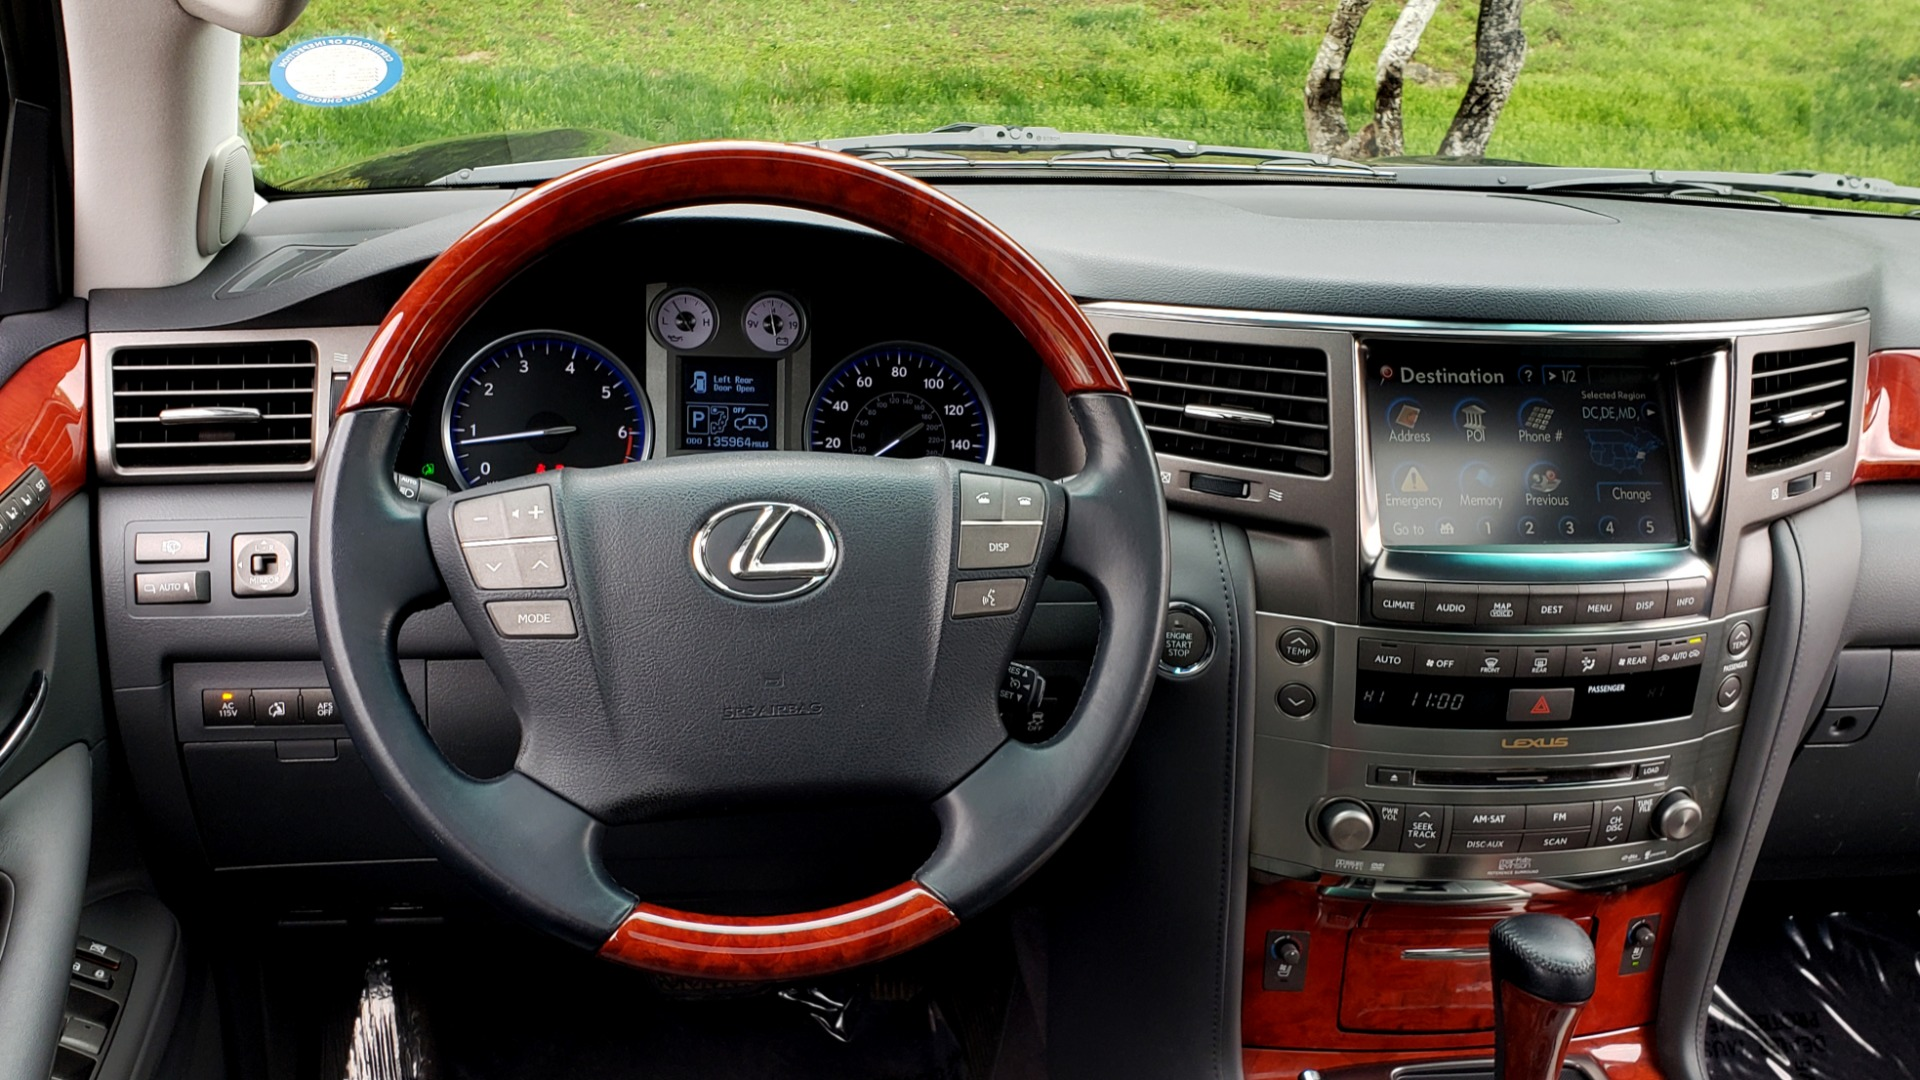 Used 2008 Lexus LX 570 4WD / TECH PKG / NAV / SUNROOF / MARK LEVINSON / PARK ASST for sale $22,995 at Formula Imports in Charlotte NC 28227 39